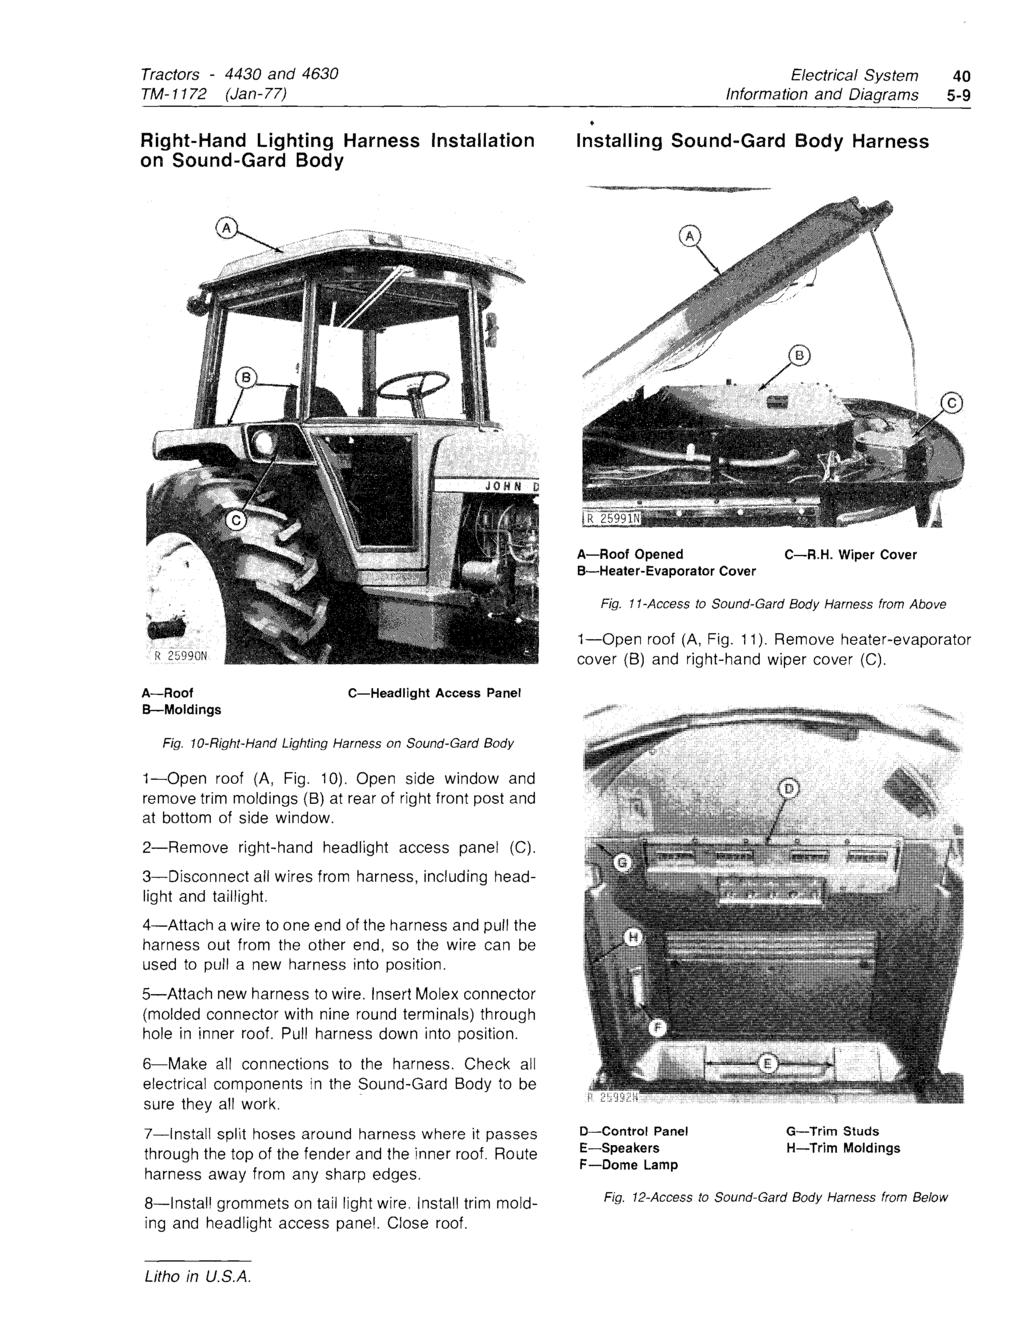 Model 4430 4630 Tractor Volume 1 Of 3 Pdf Hydro Lectric Power System Wiring Diagram For 1946 47 Chevrolet Convertible Bodies Tm 1172 Jan 77 Right Hand Lighting Harness Installation On Sound